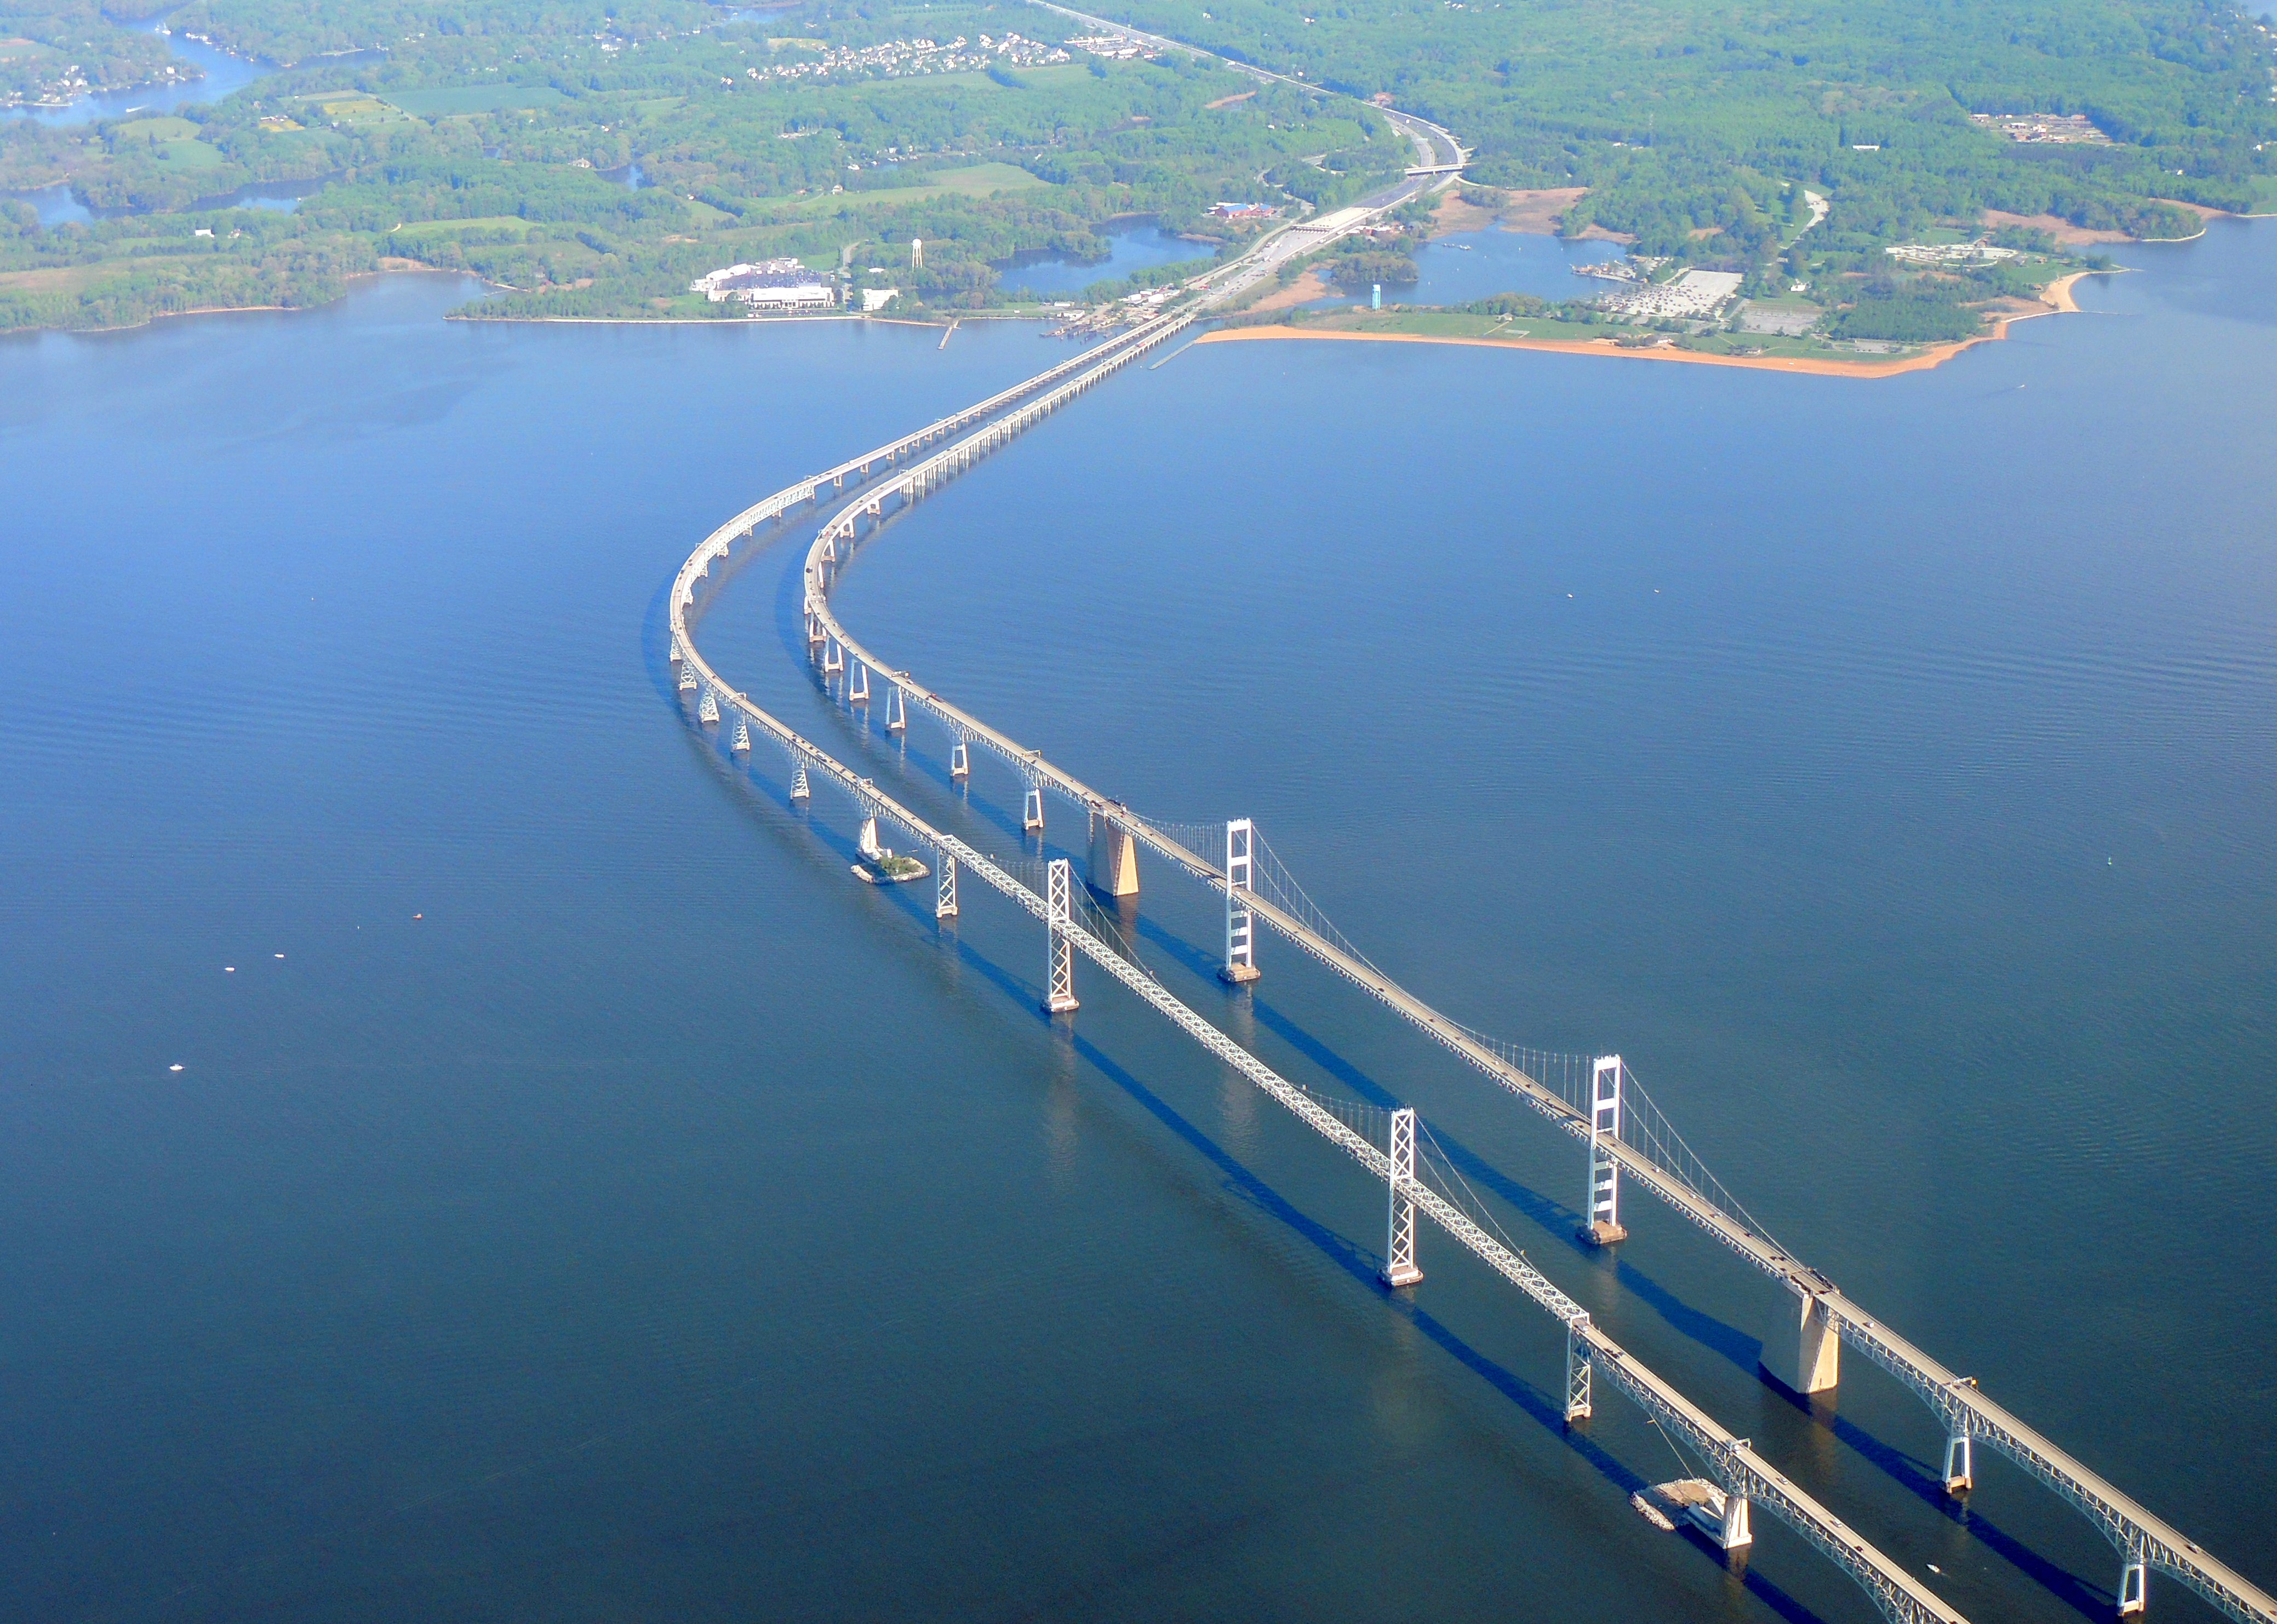 Flying over the Twin Bay Bridges (Chesapeake Bay) Maryland